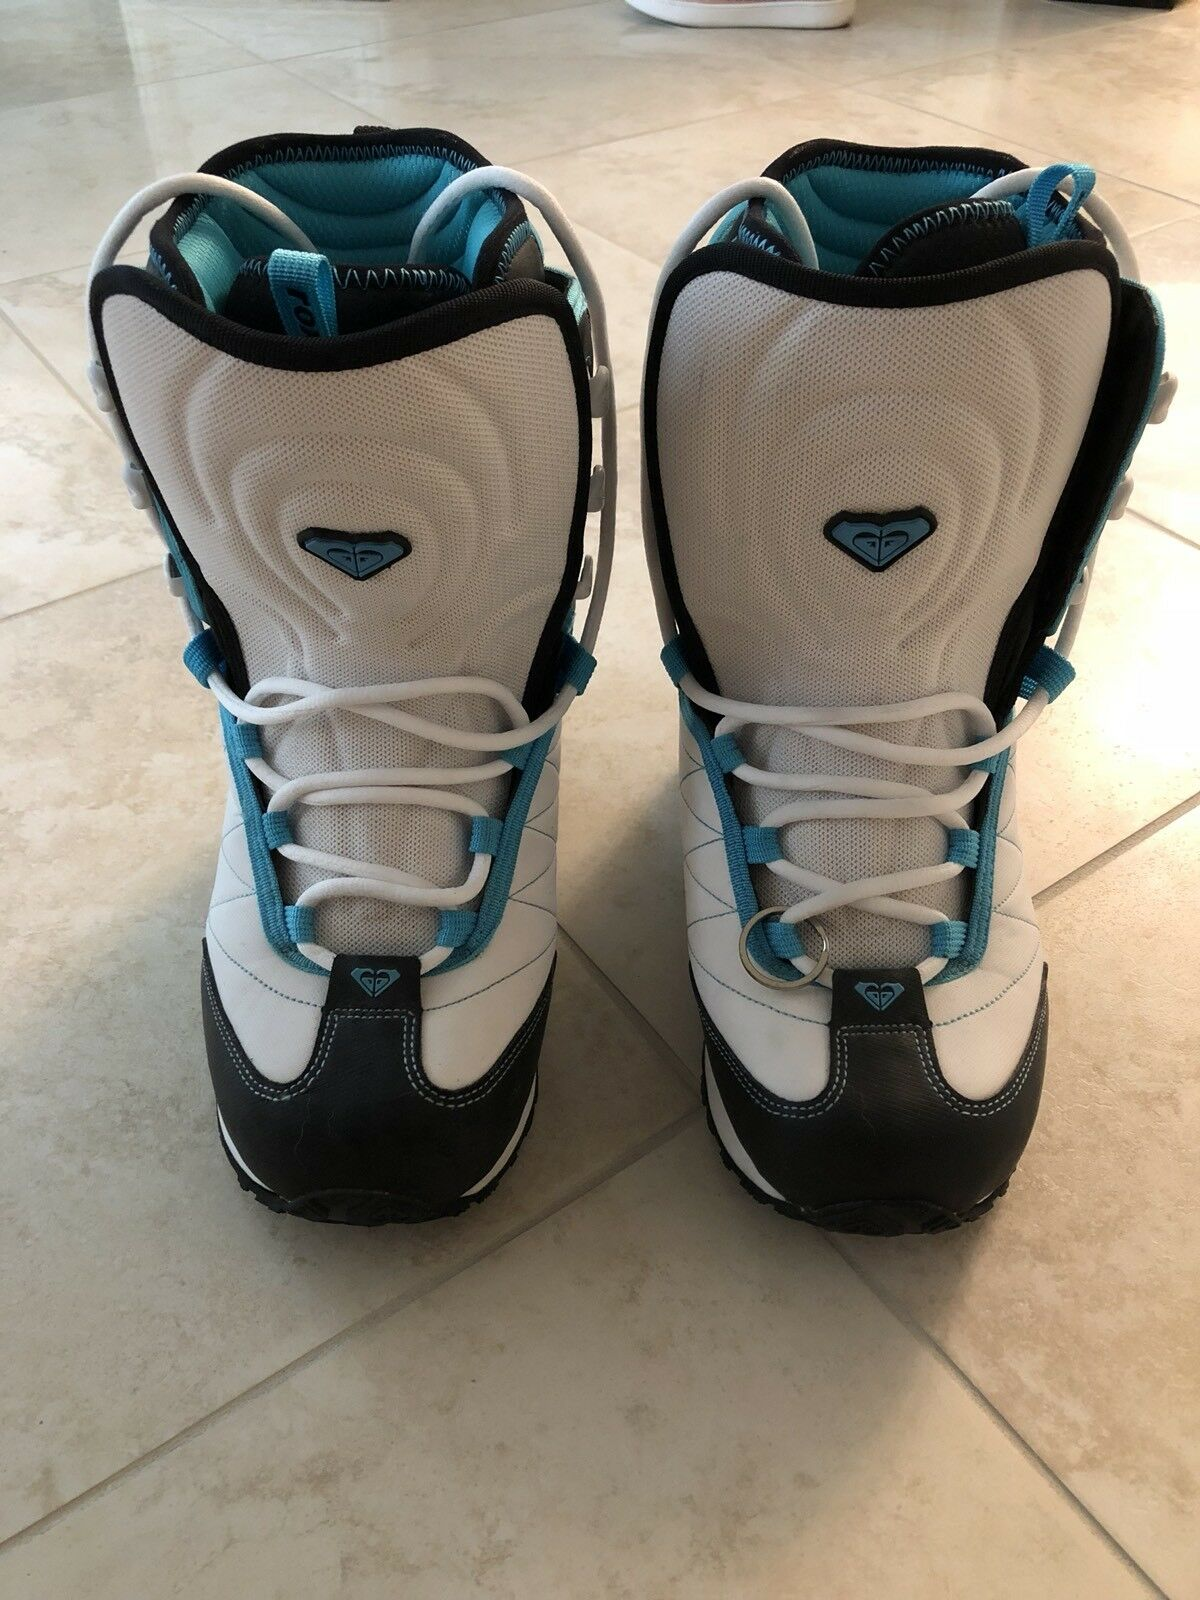 New roxy snowboard boots teal & white womens size 9